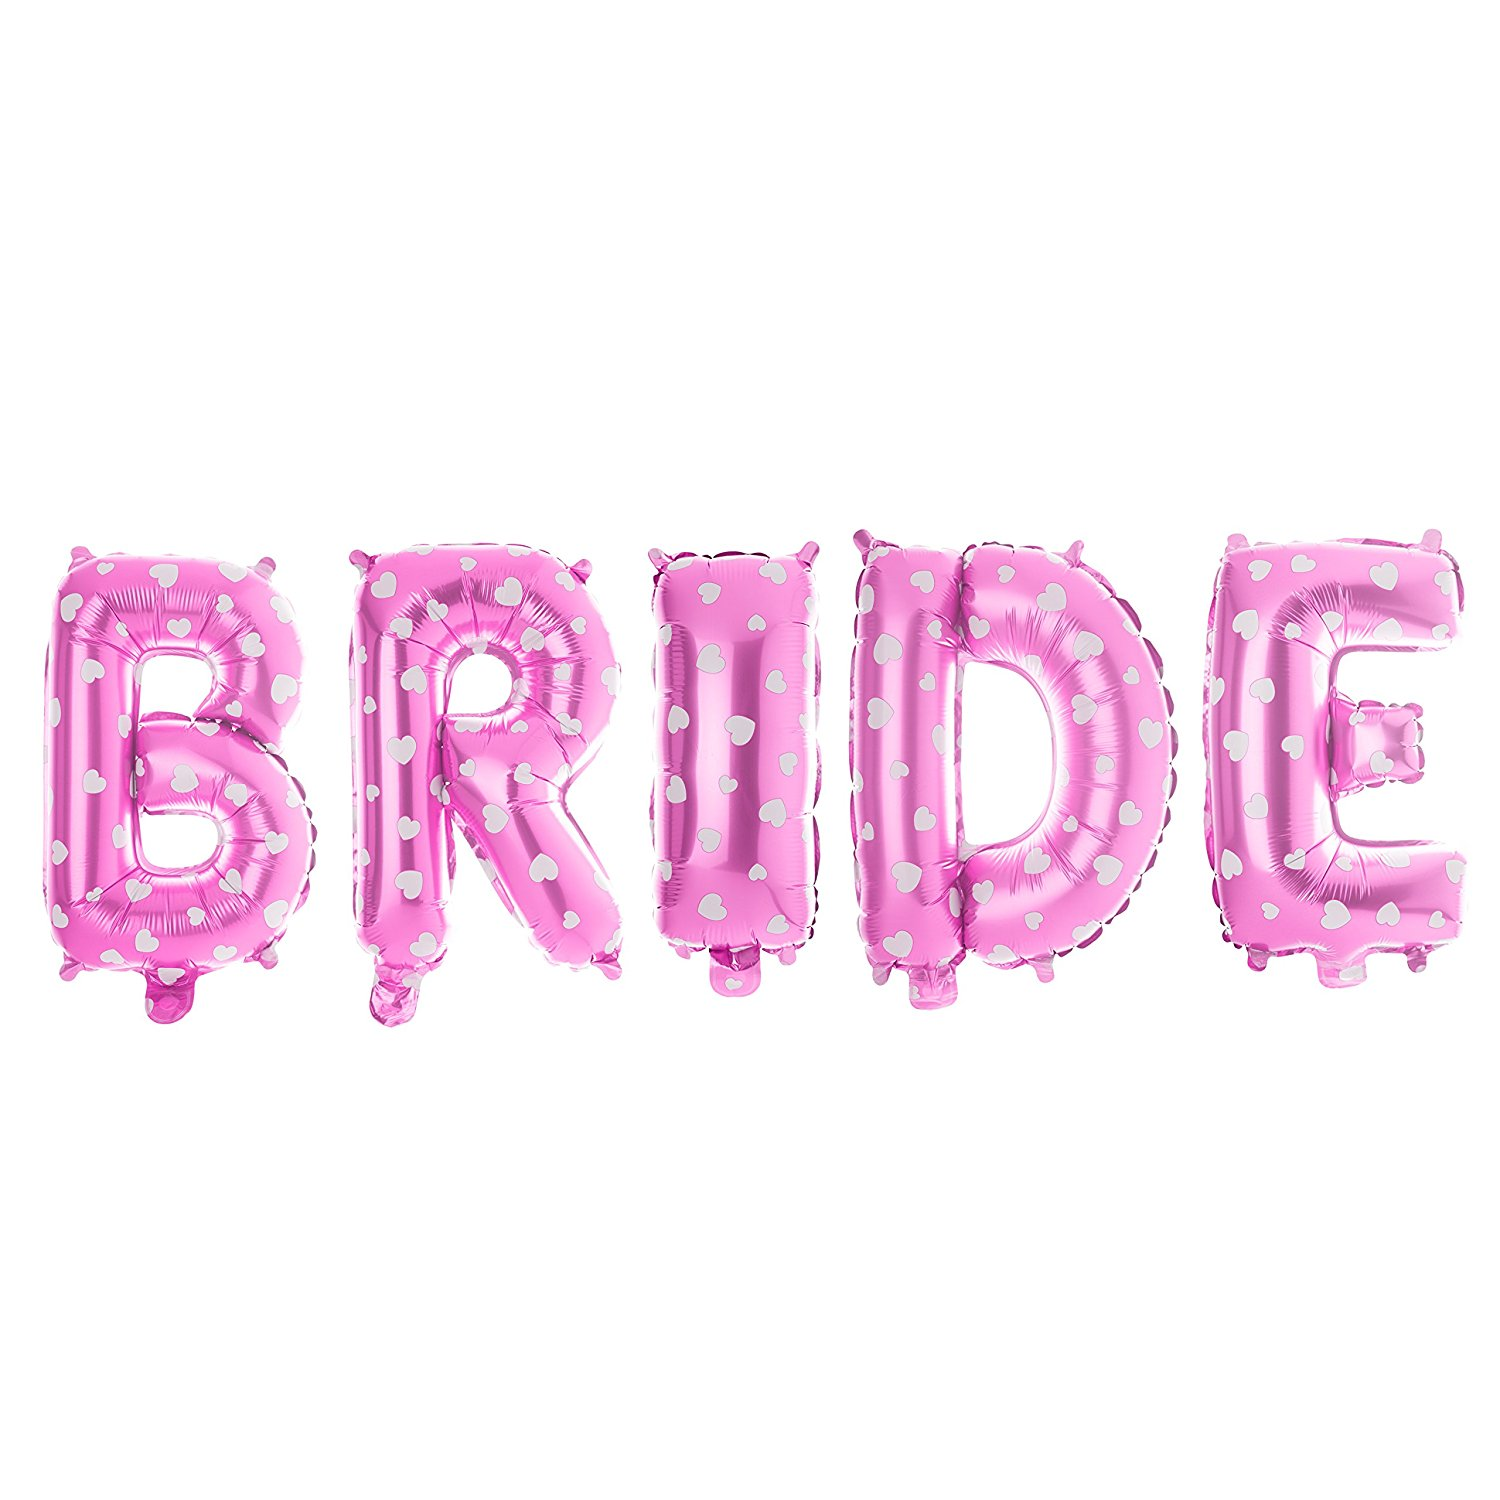 Non-Floating Bride Letter Balloons Bridal Shower Bachelorette Party Decorations Small 13 Inch (Pink with Hearts)